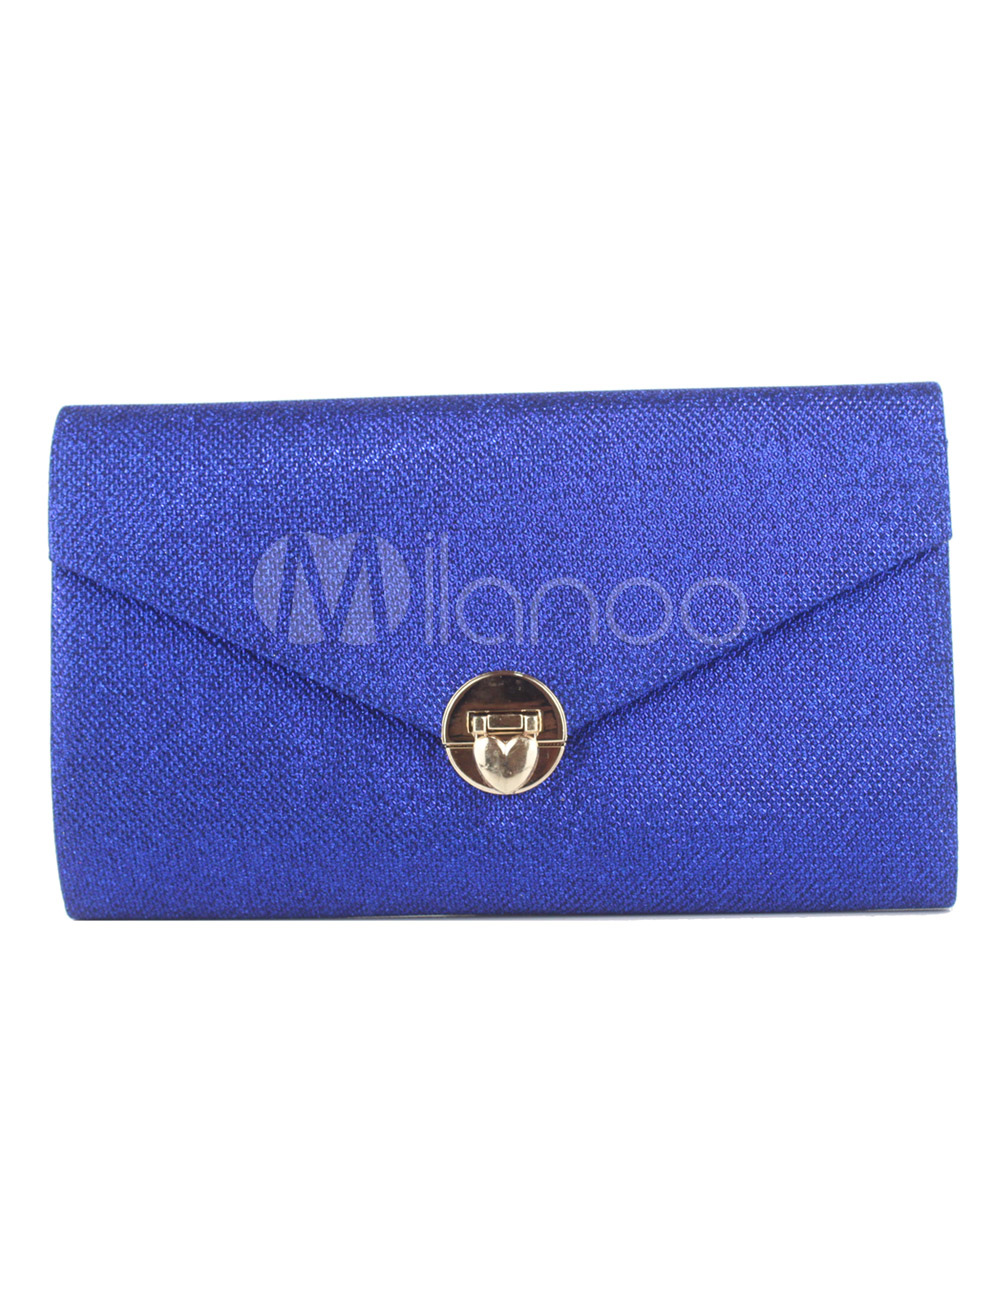 Modern Glitter Synthetic Women's Evening Bag